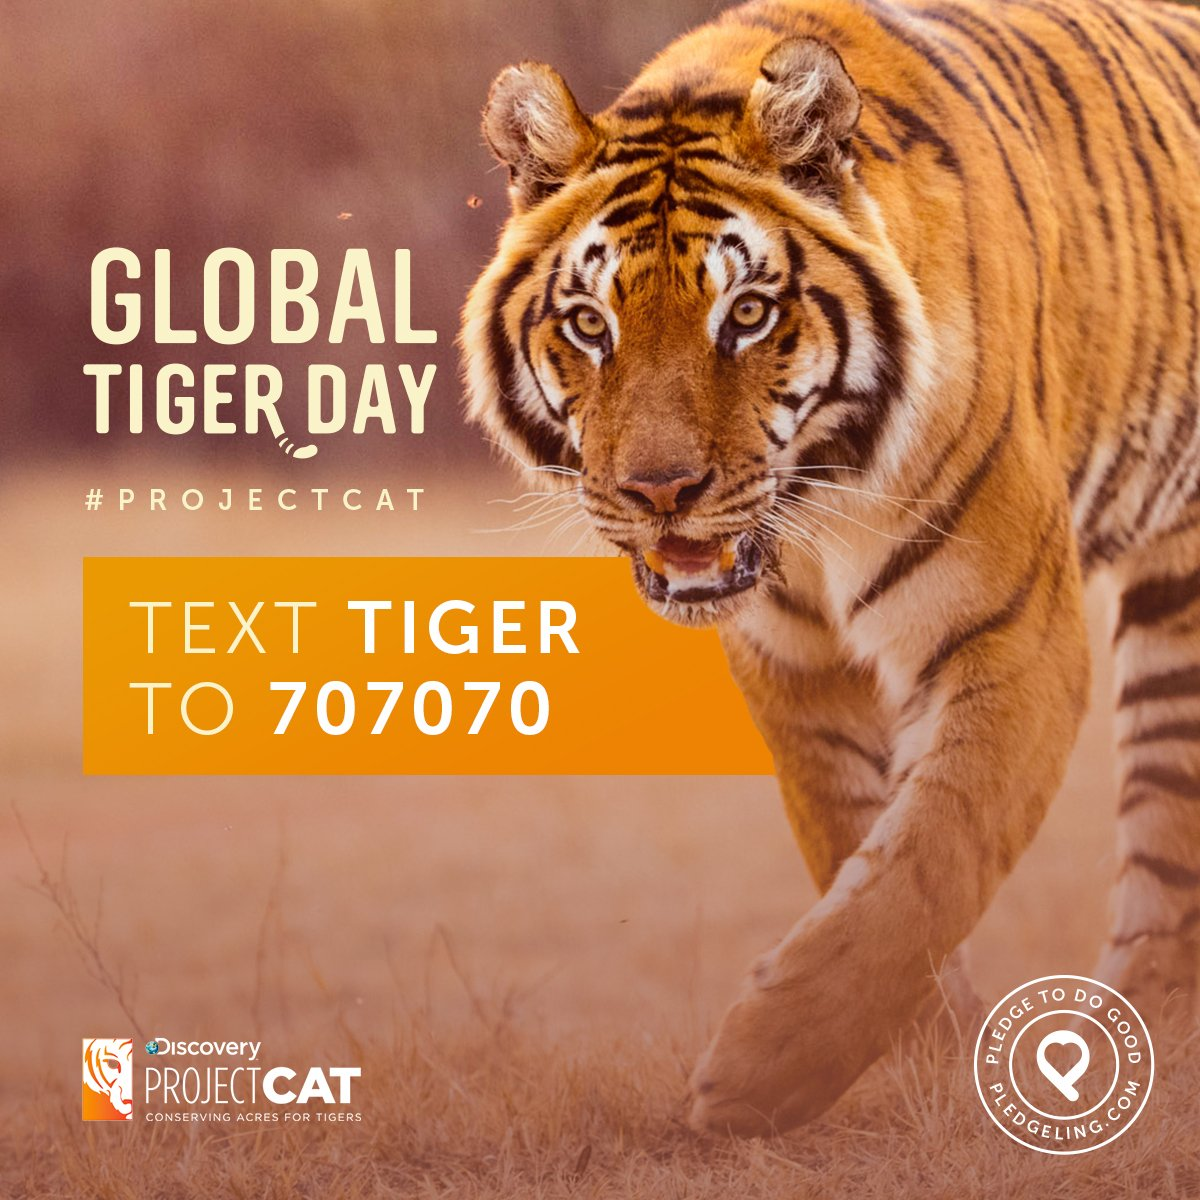 Pledgeling On Twitter Only 3890 Wild Tigers In The World Help DiscoveryComm WWF Protect Them Text TIGER To 707070 ProjectCAT PledgeToDoGood